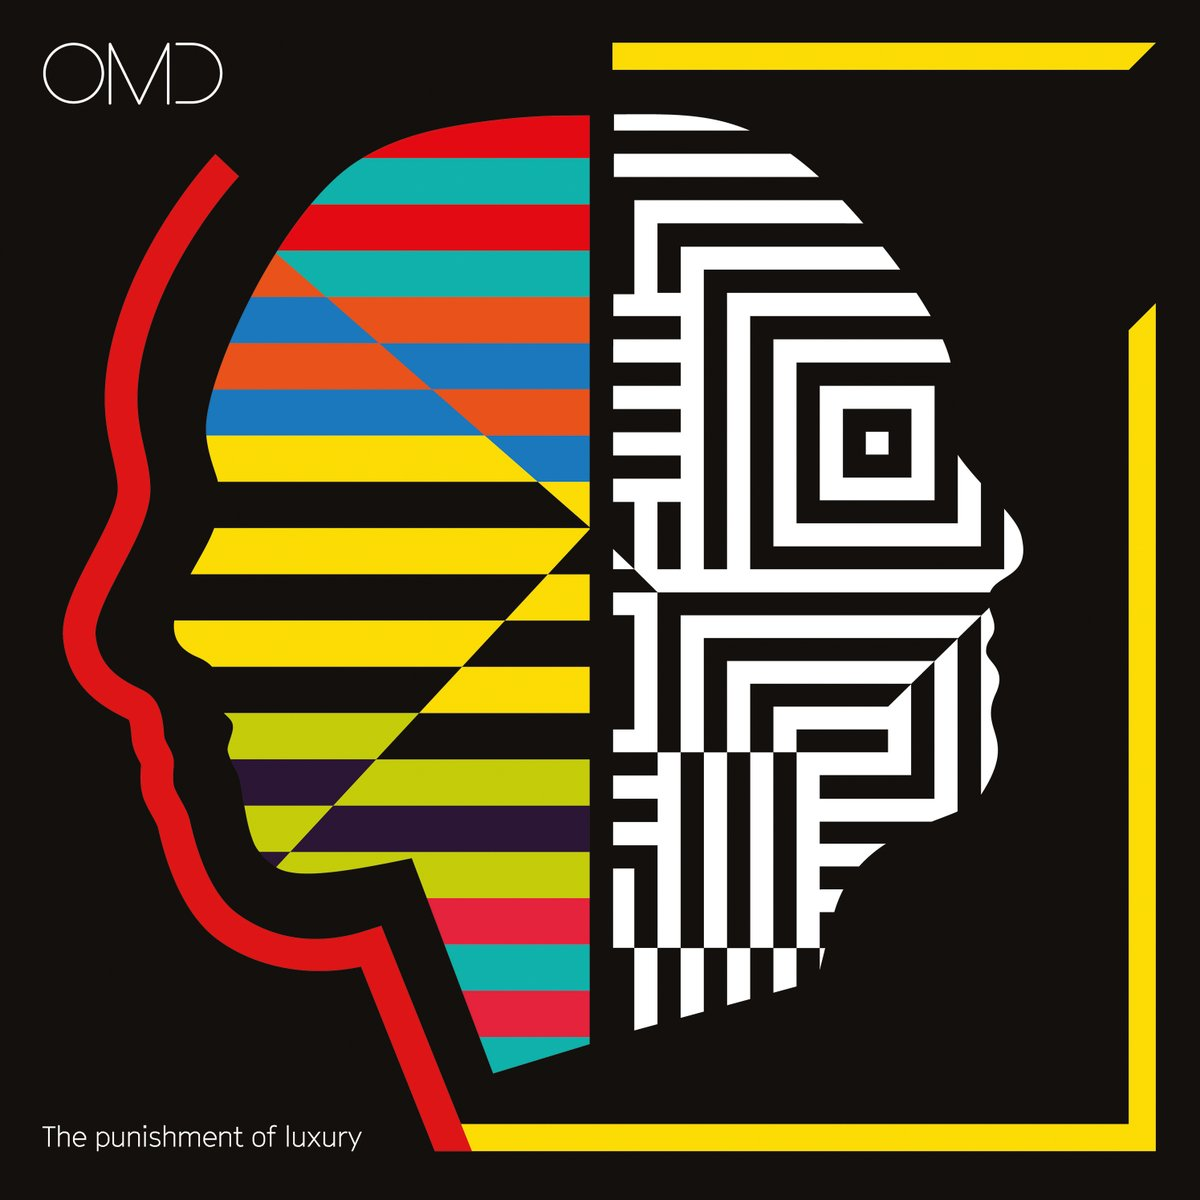 omd the punishment of luxury OMD announce new album, The Punishment of Luxury, share video for La Mitrailleuse    watch